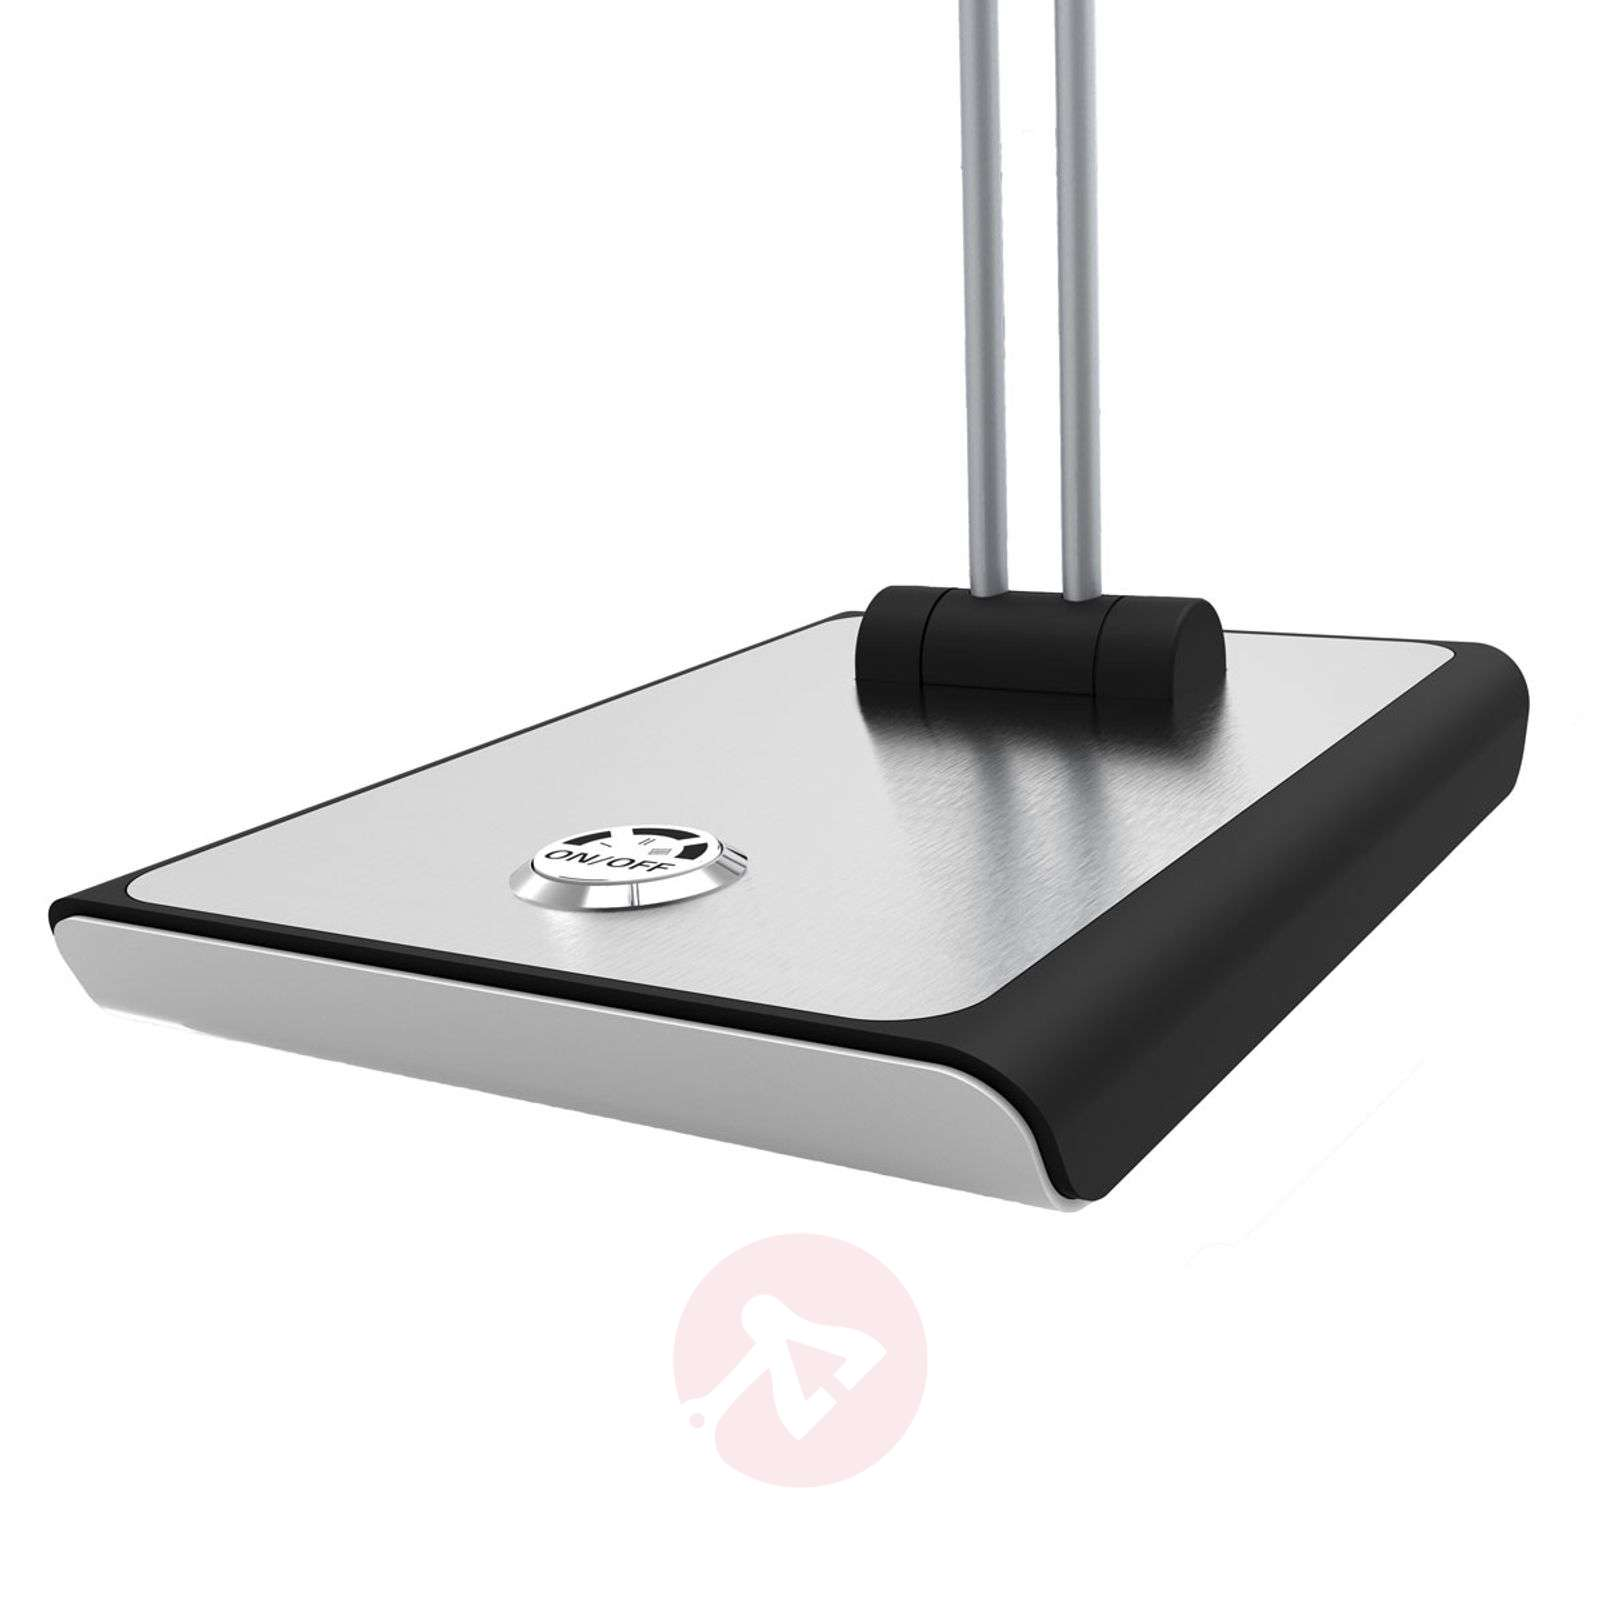 Pivotable LED desk lamp Mani with dimmer-5000301-01